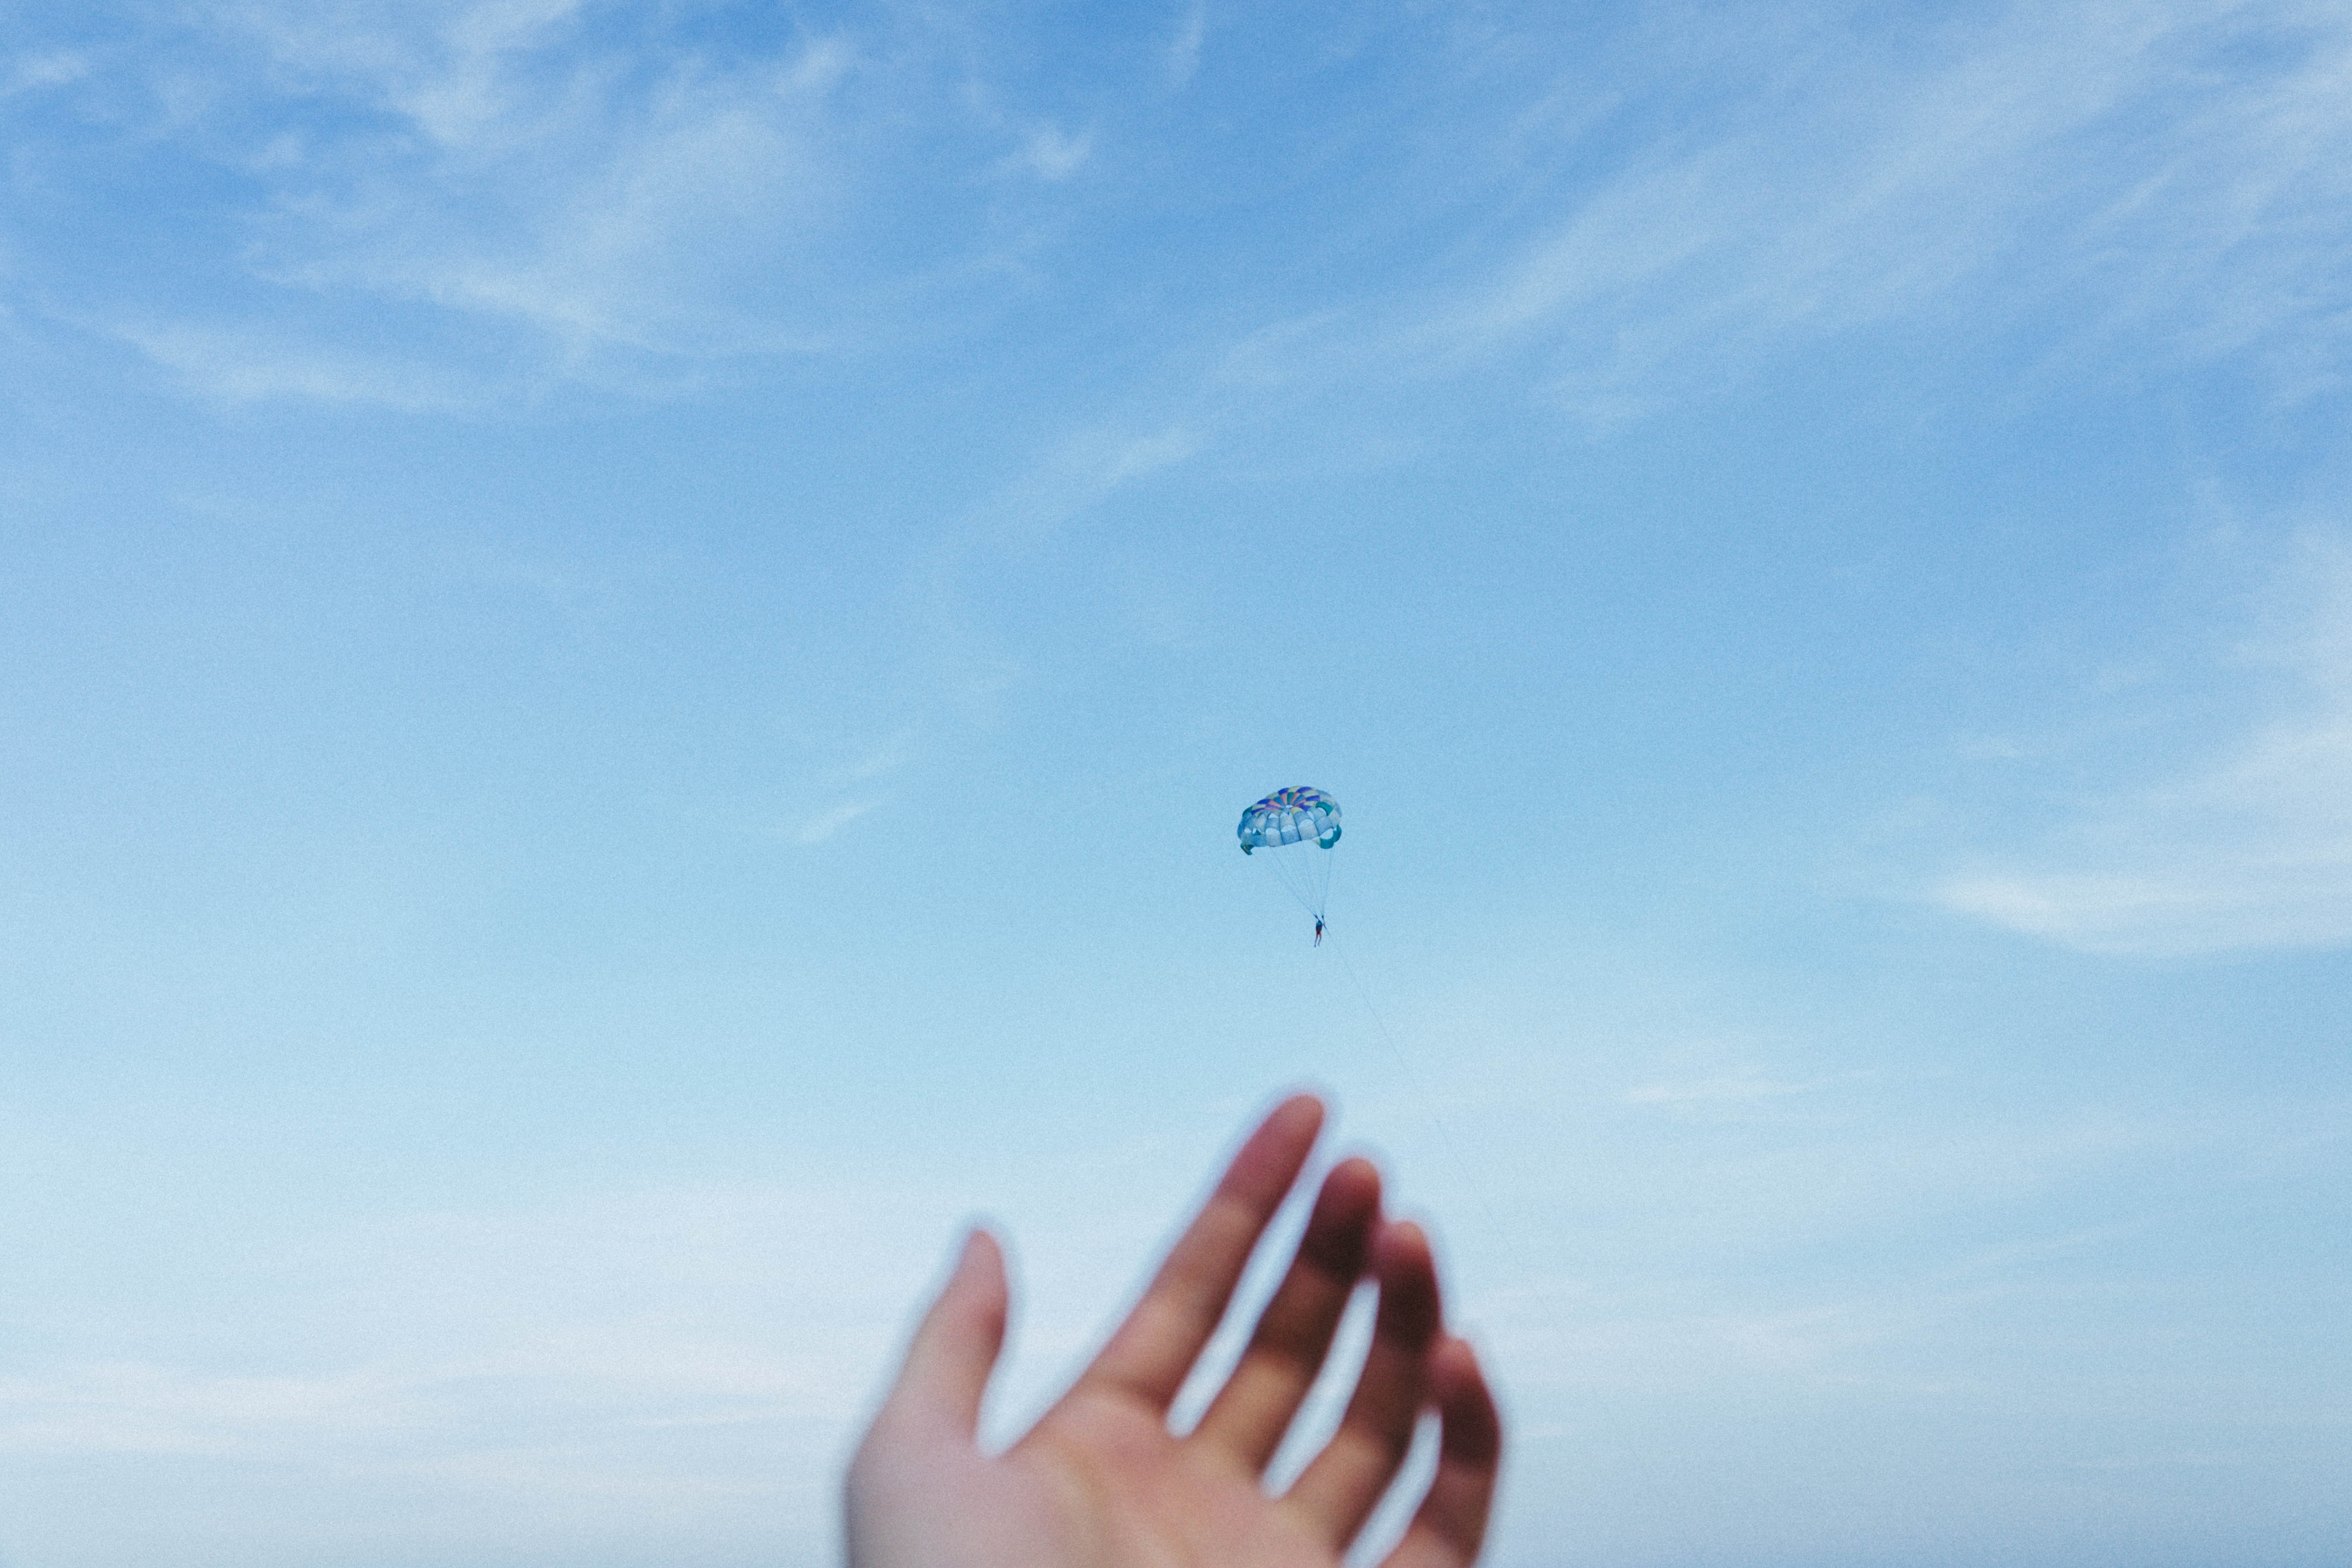 person riding parachute at daytime